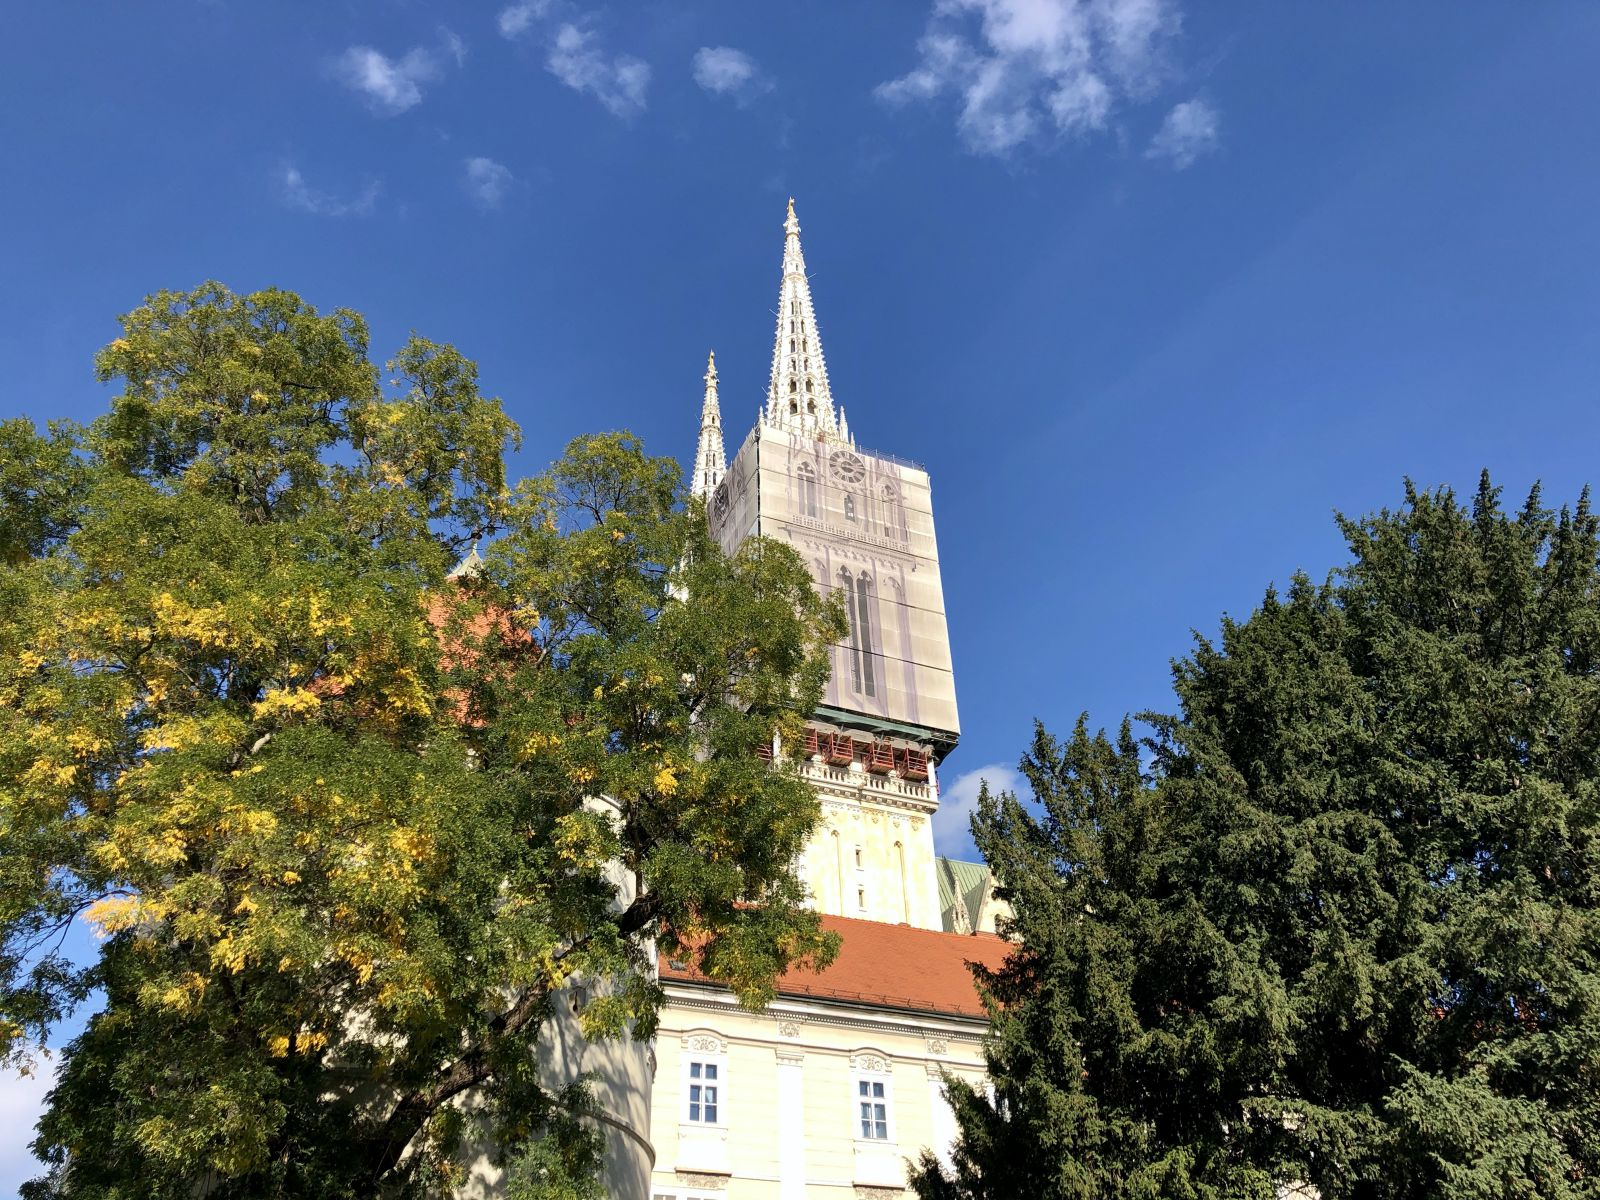 Zagreb cathedral, photo by Matko M. Švarc